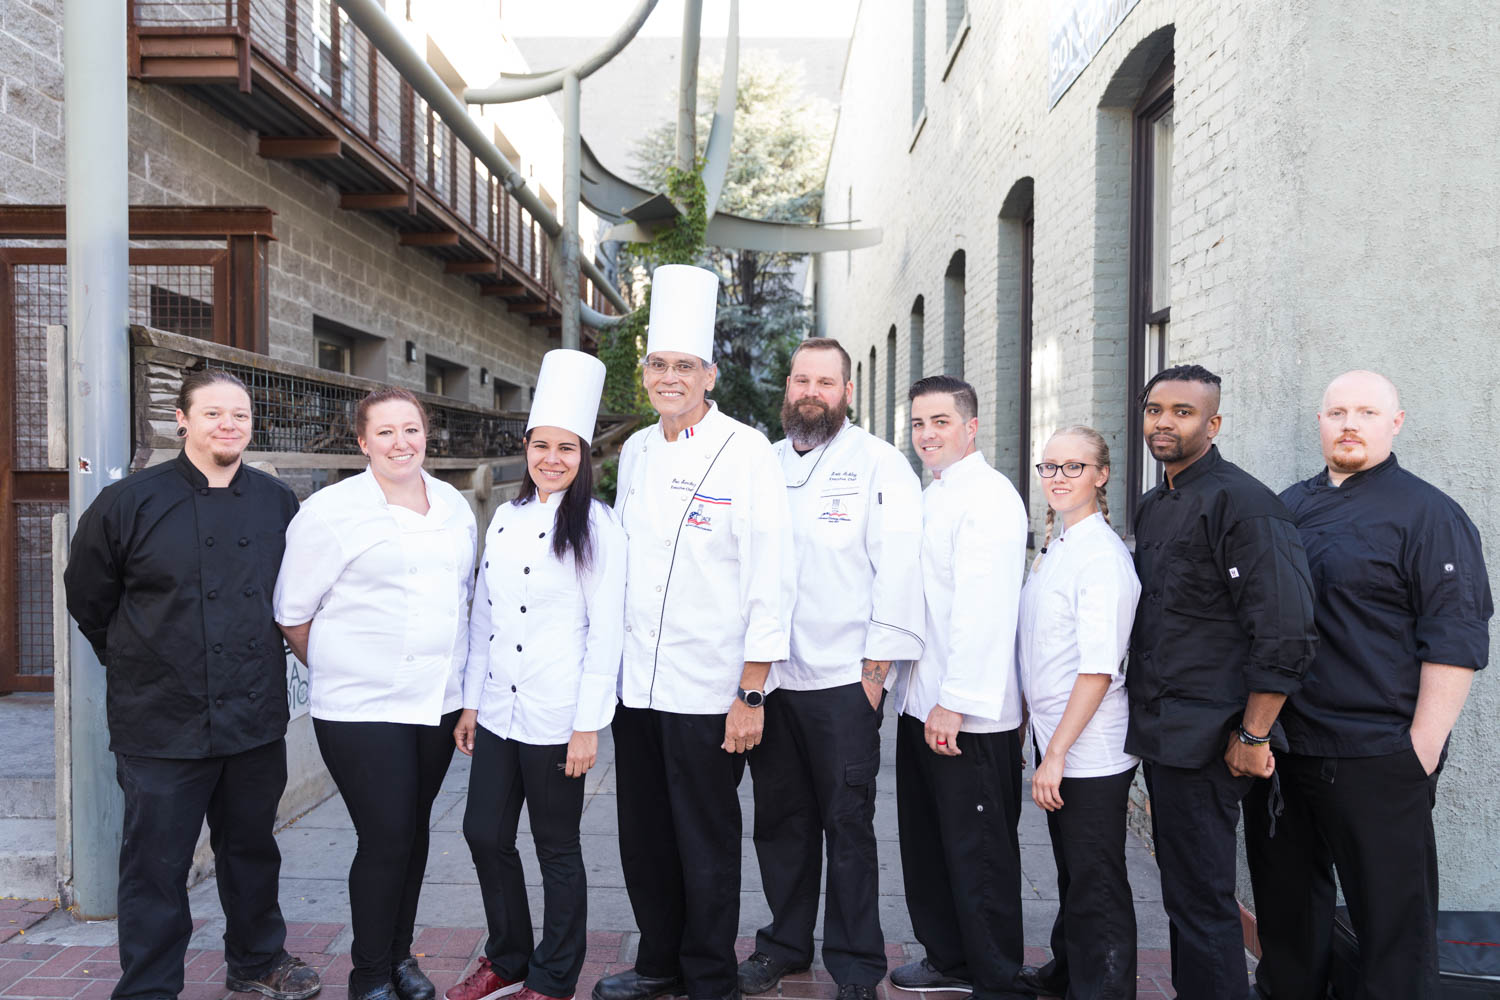 The chef team